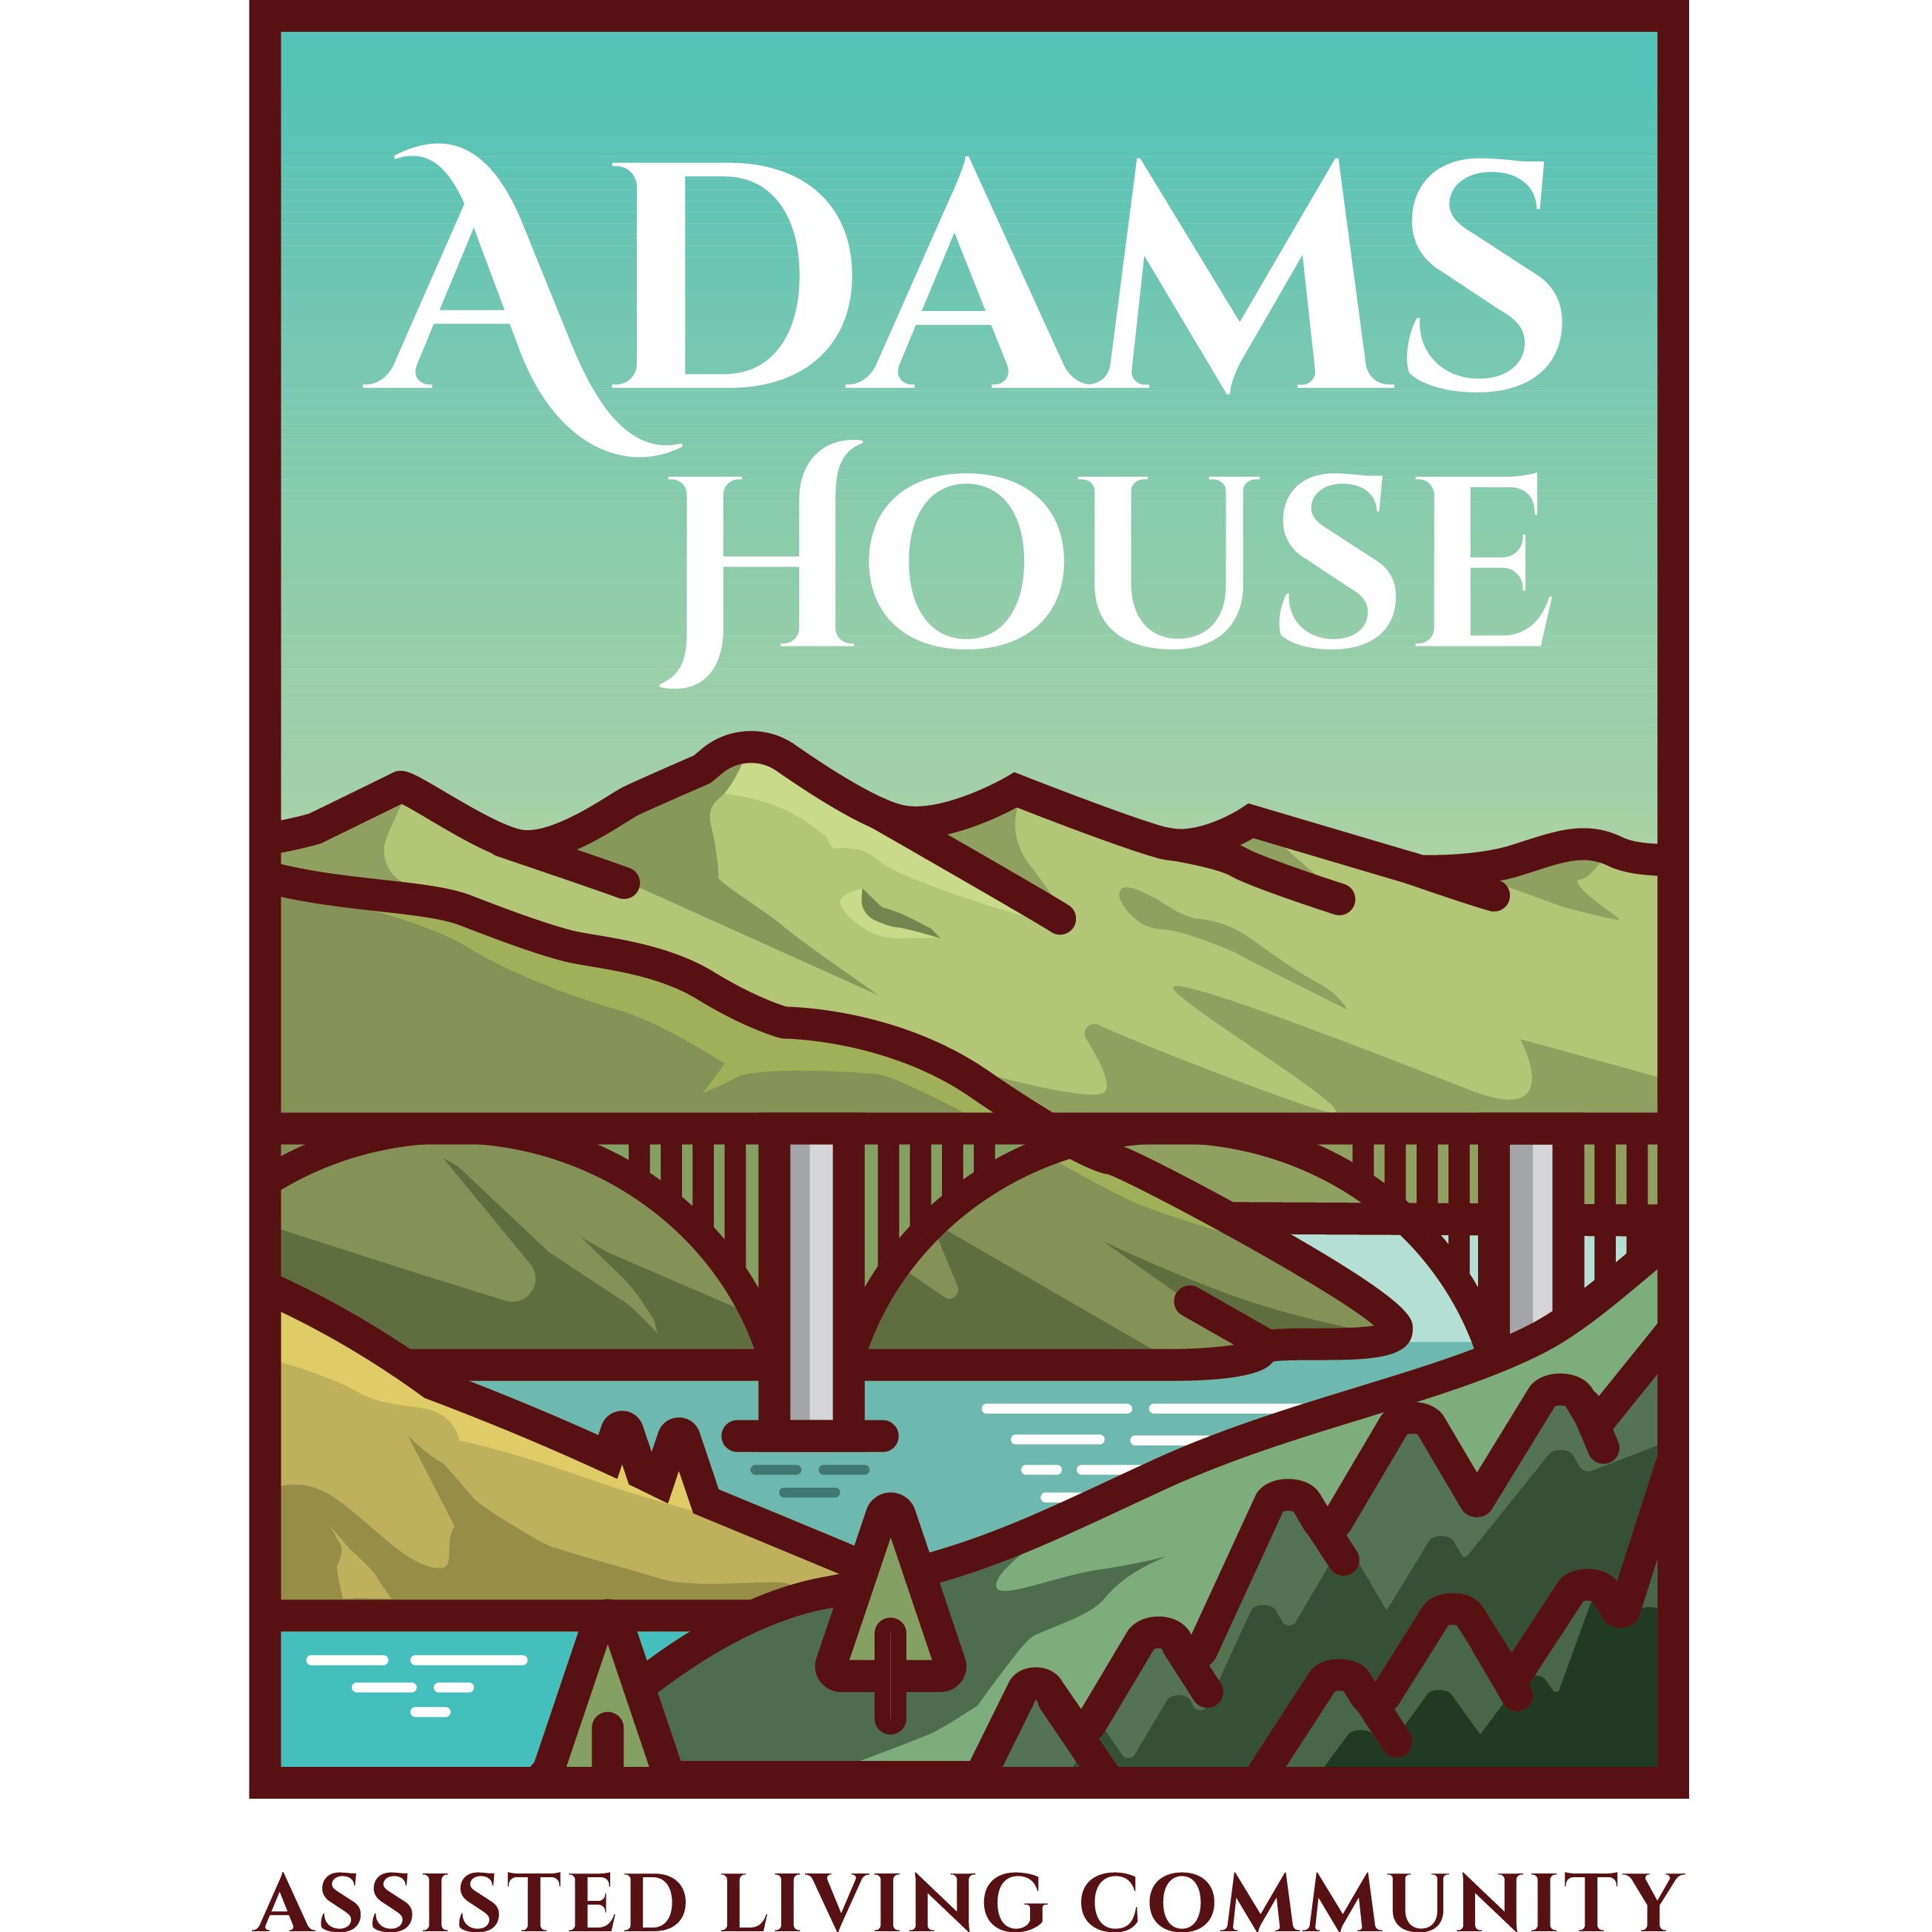 Adams House Assisted Living Community